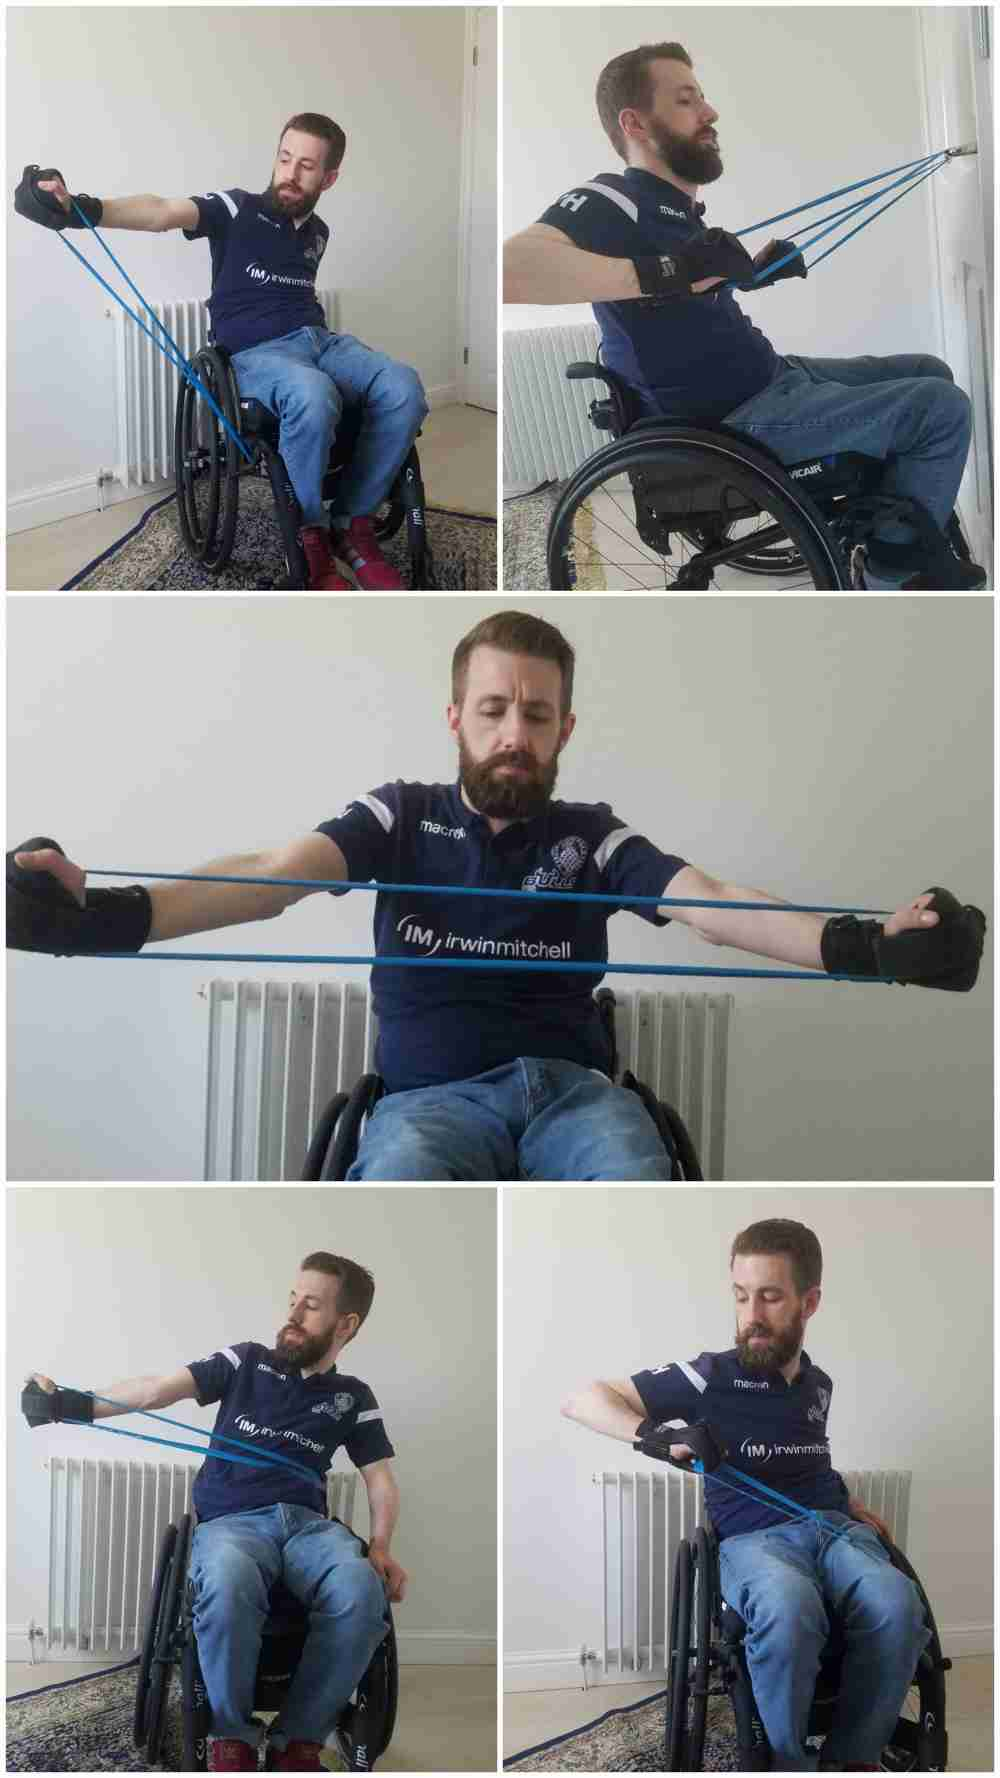 Gareth demonstrates a range of Theraband/resistance band exercise